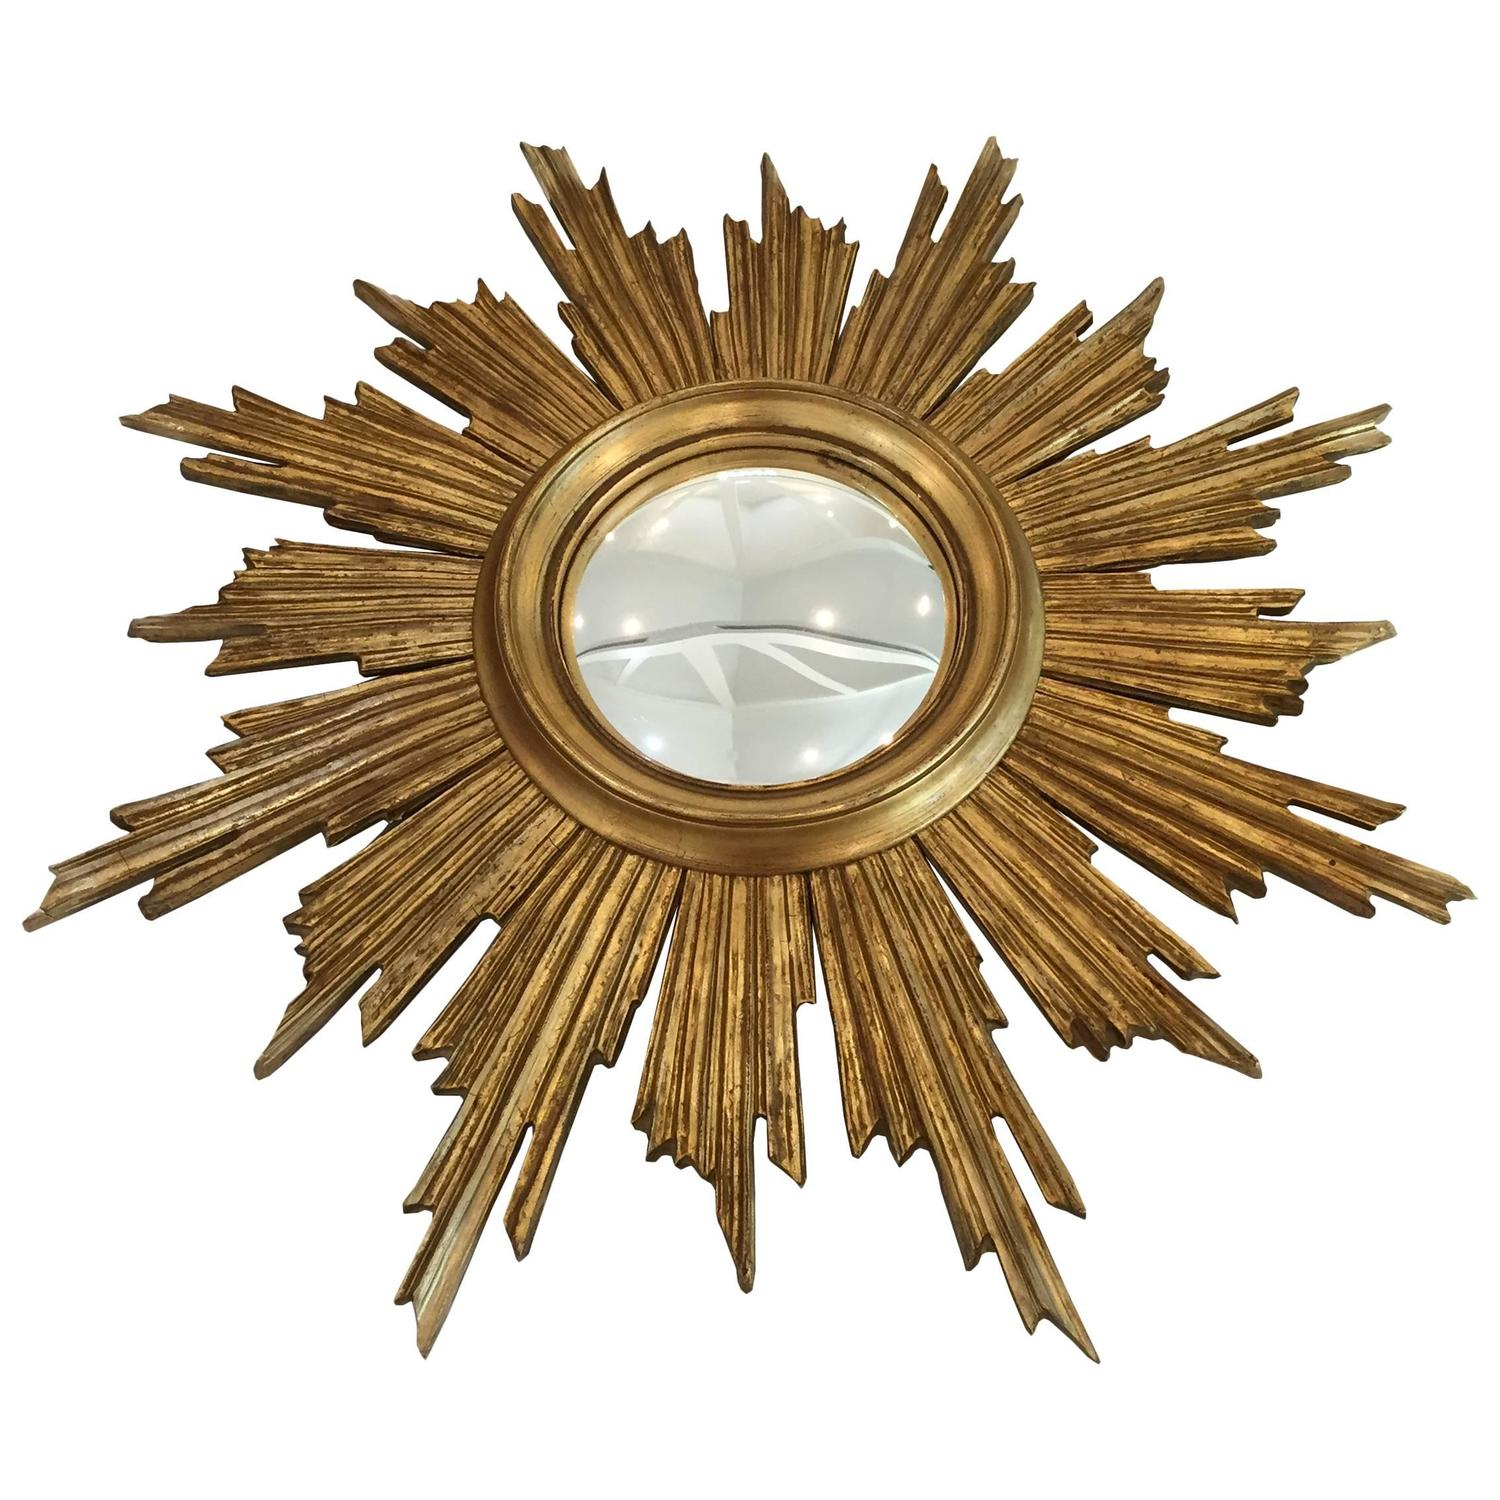 Midcentury gold painted wooden sunburst mirror at 1stdibs for Wooden mirror